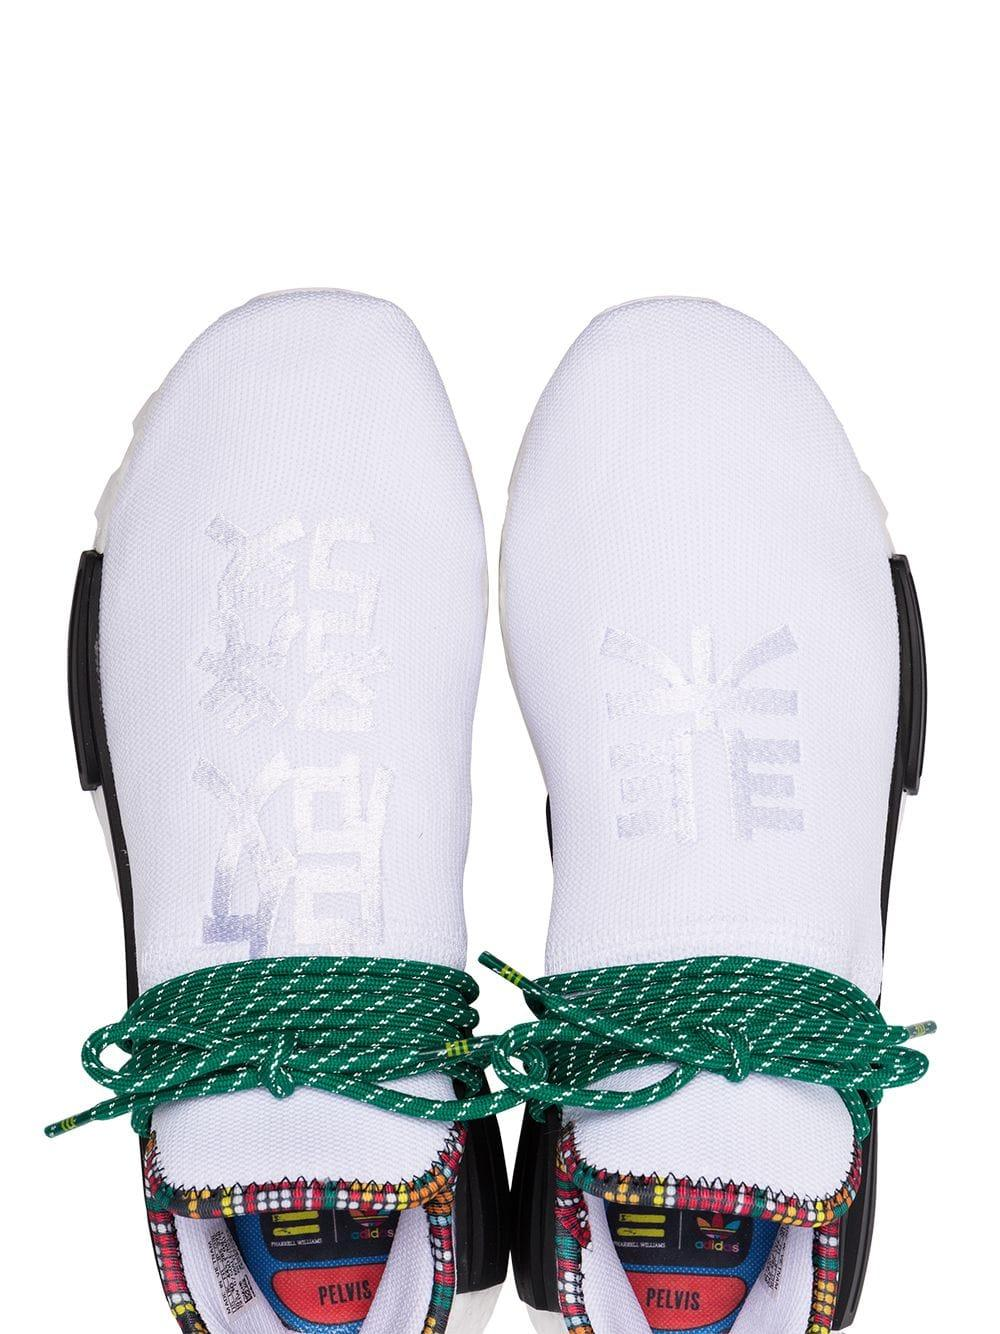 8b0300587 Adidas - X Pharrell Williams White Human Body Nmd Sneakers for Men - Lyst.  View fullscreen